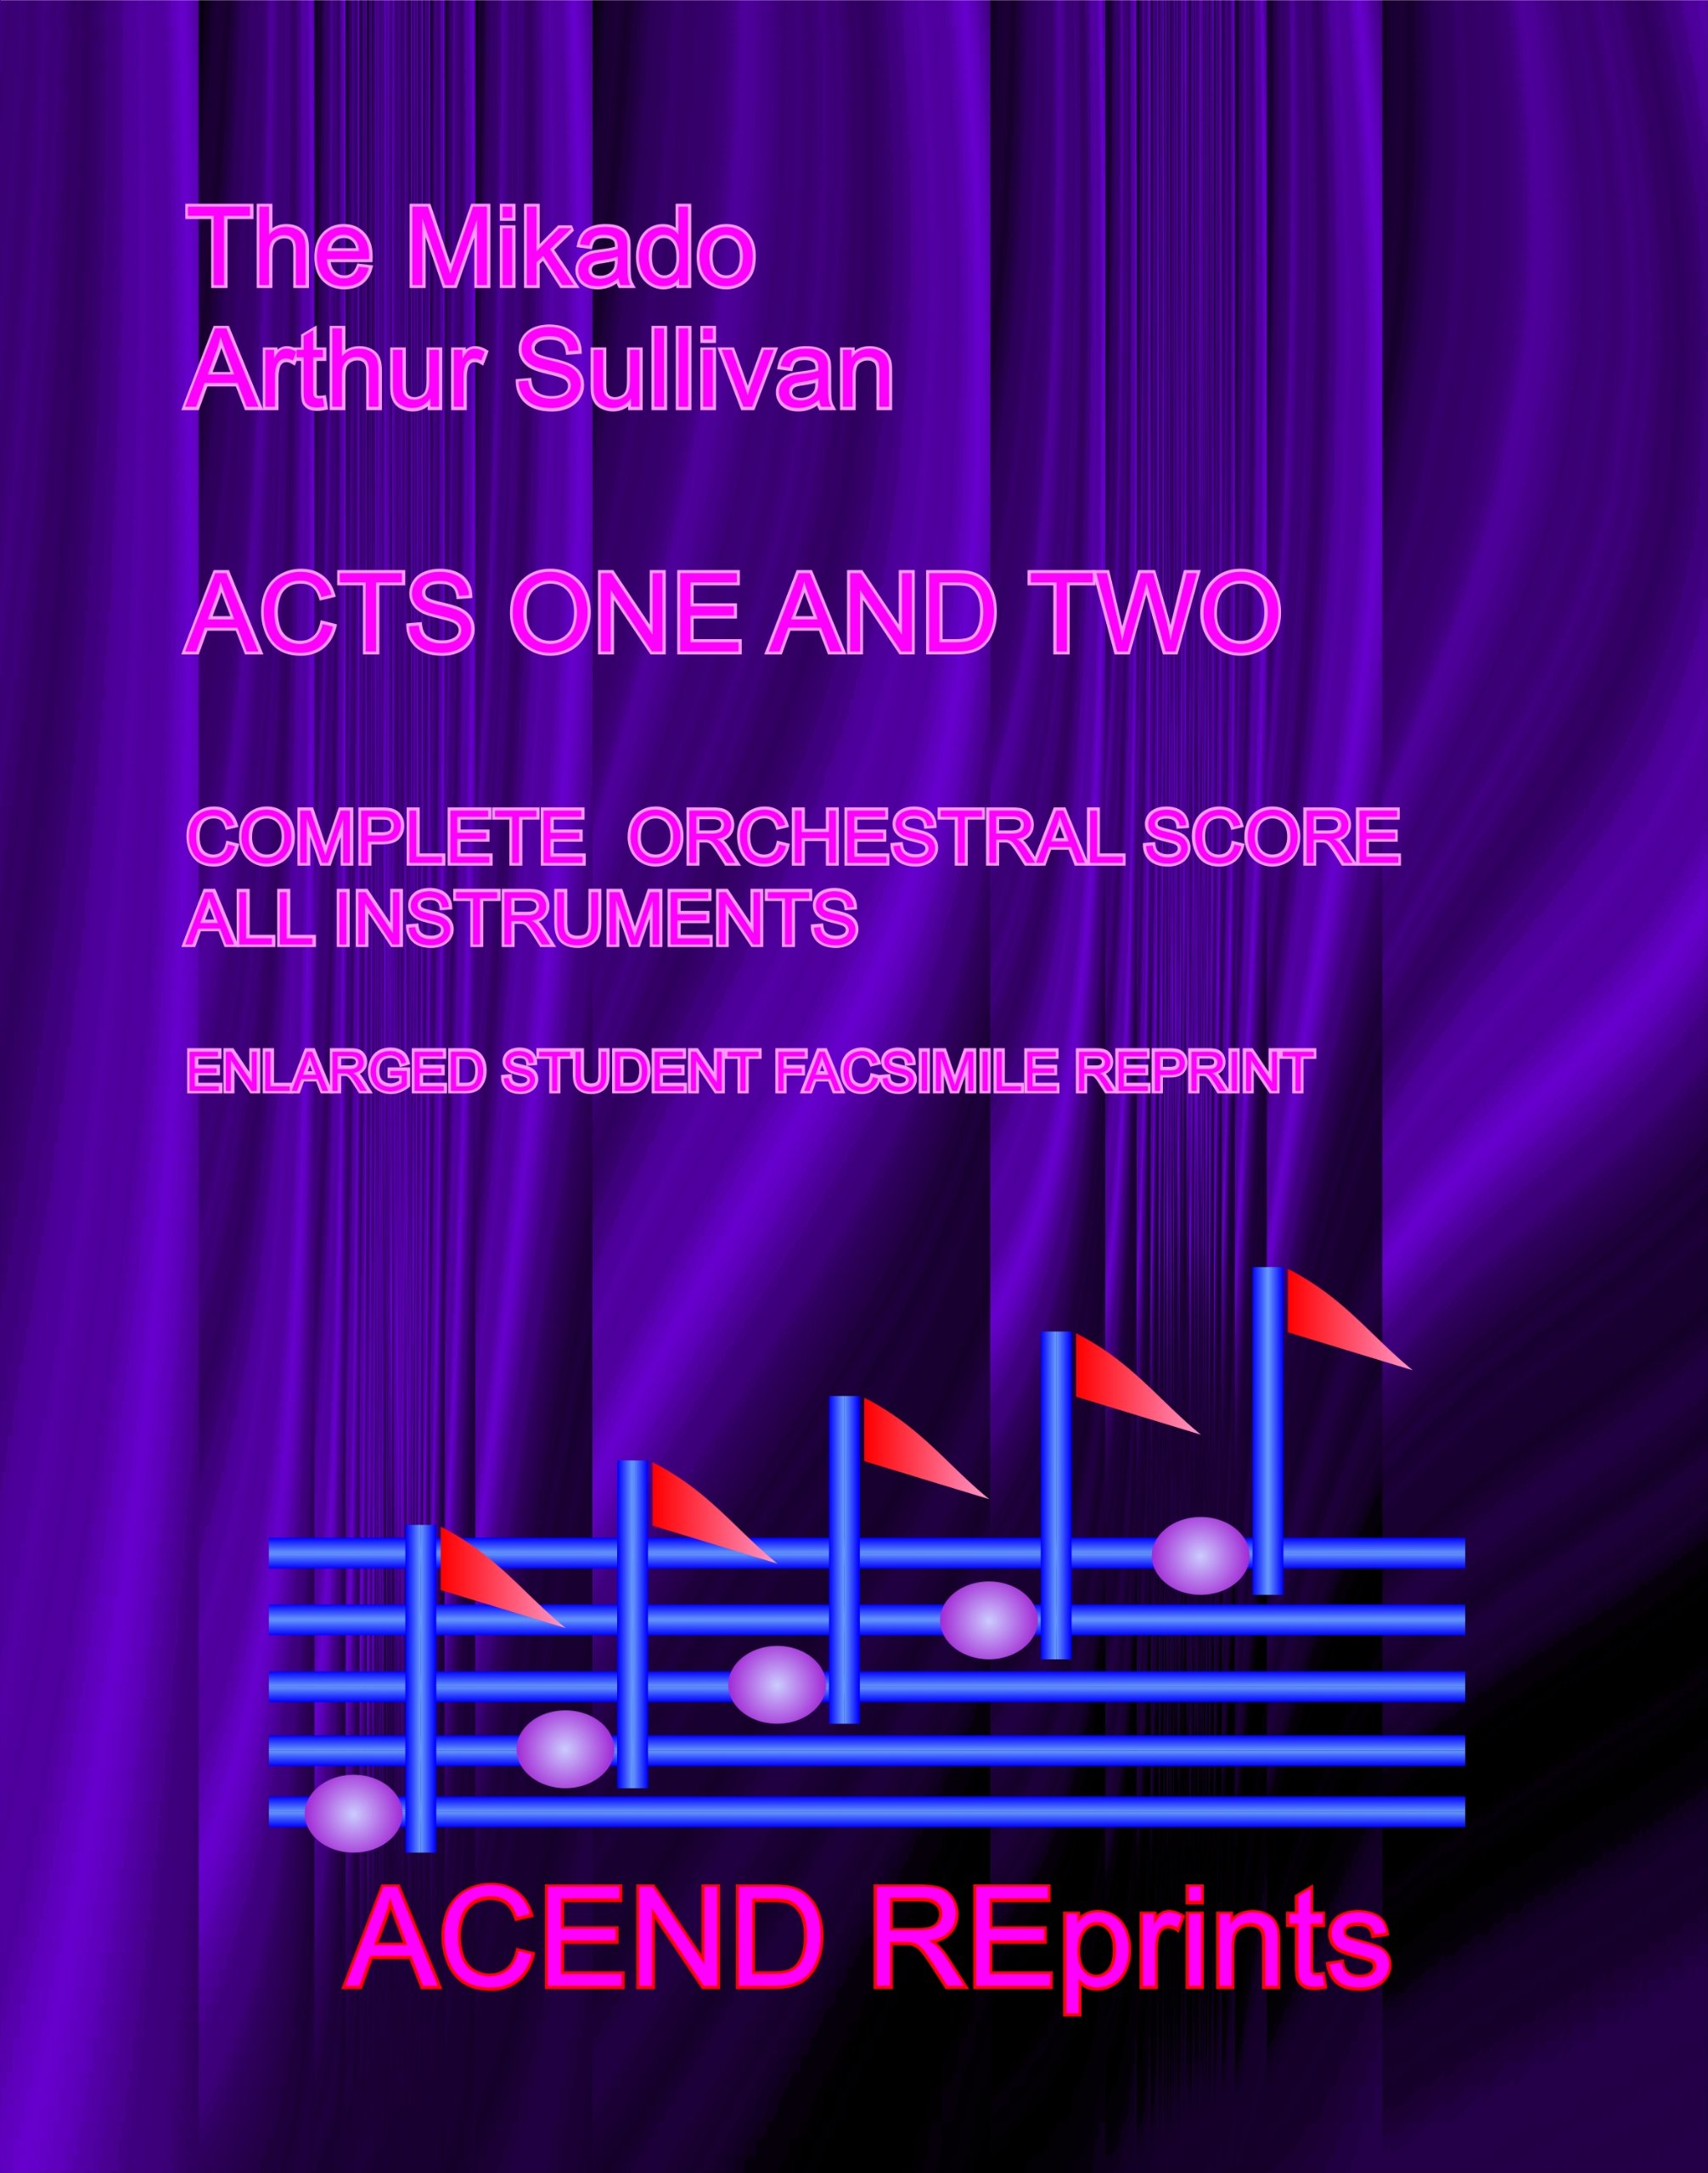 The Mikado by Arthur Sullivan ACTS ONE AND TWO COMPLETE ORCHESTRAL SCORE ALL INSTRUMENTS (STUDENT FACSIMILE) PDF